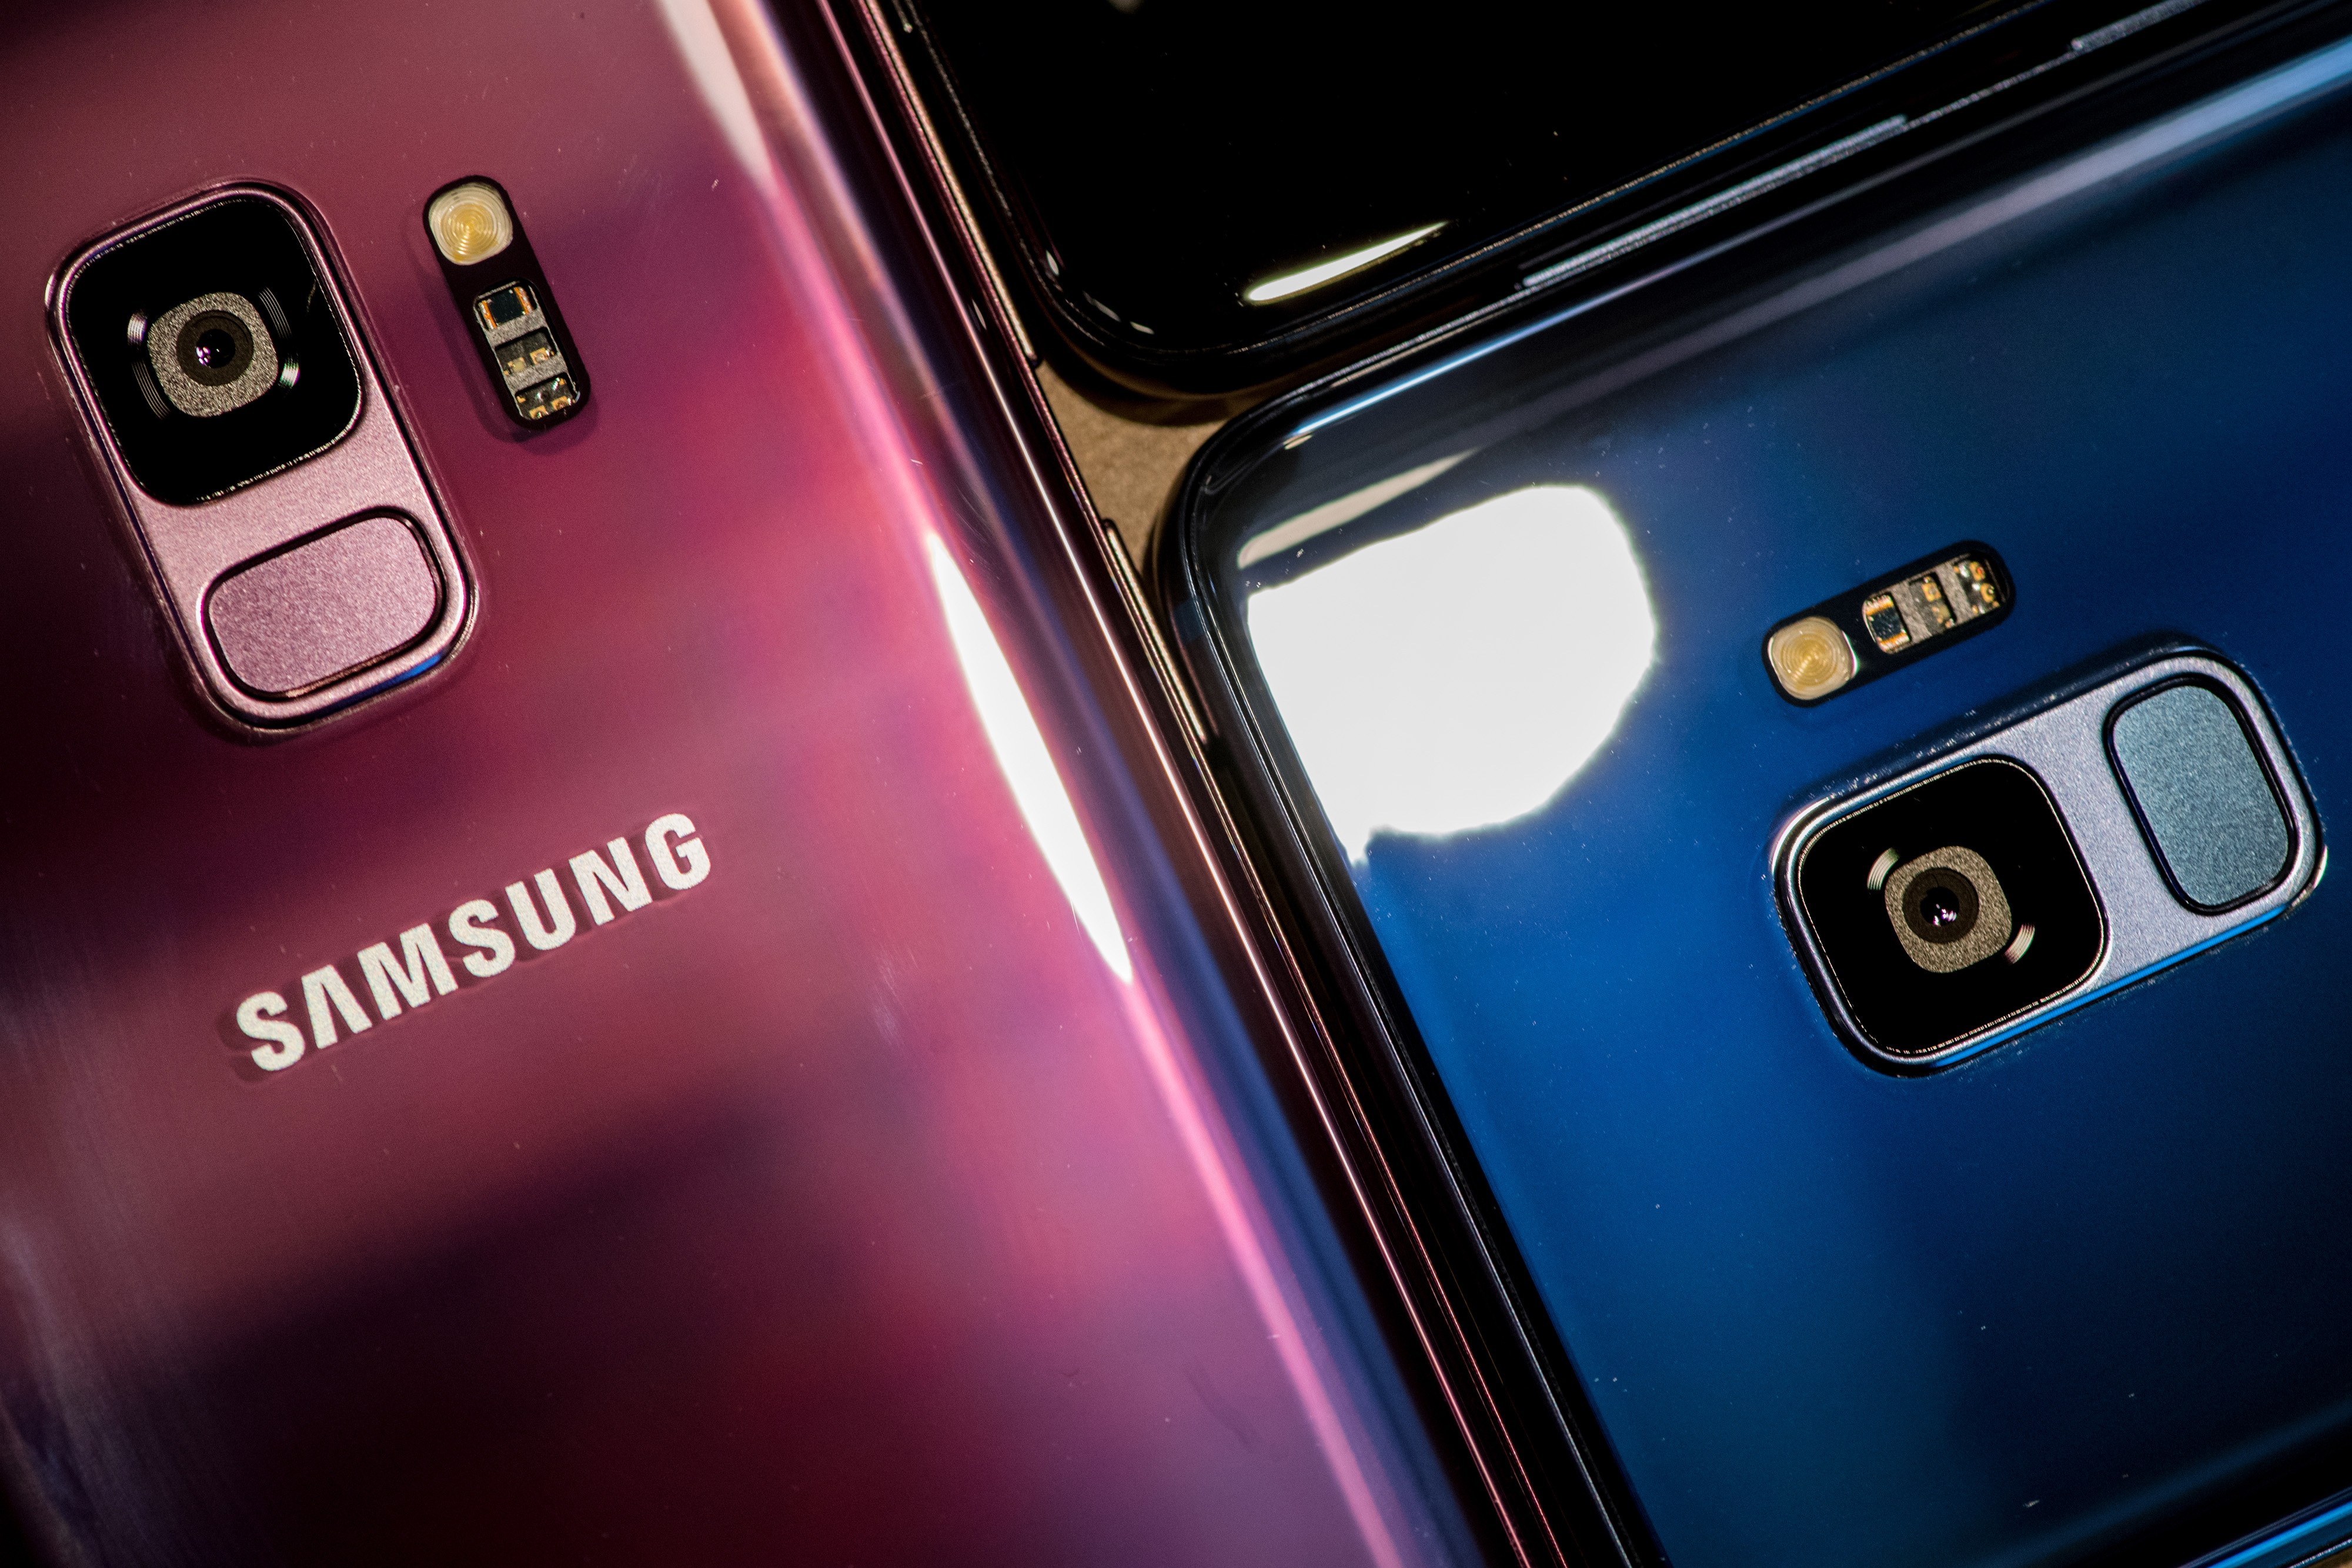 Samsung Electronics Co. Galaxy S9 Smartphone 'Unpacked' Launch Event